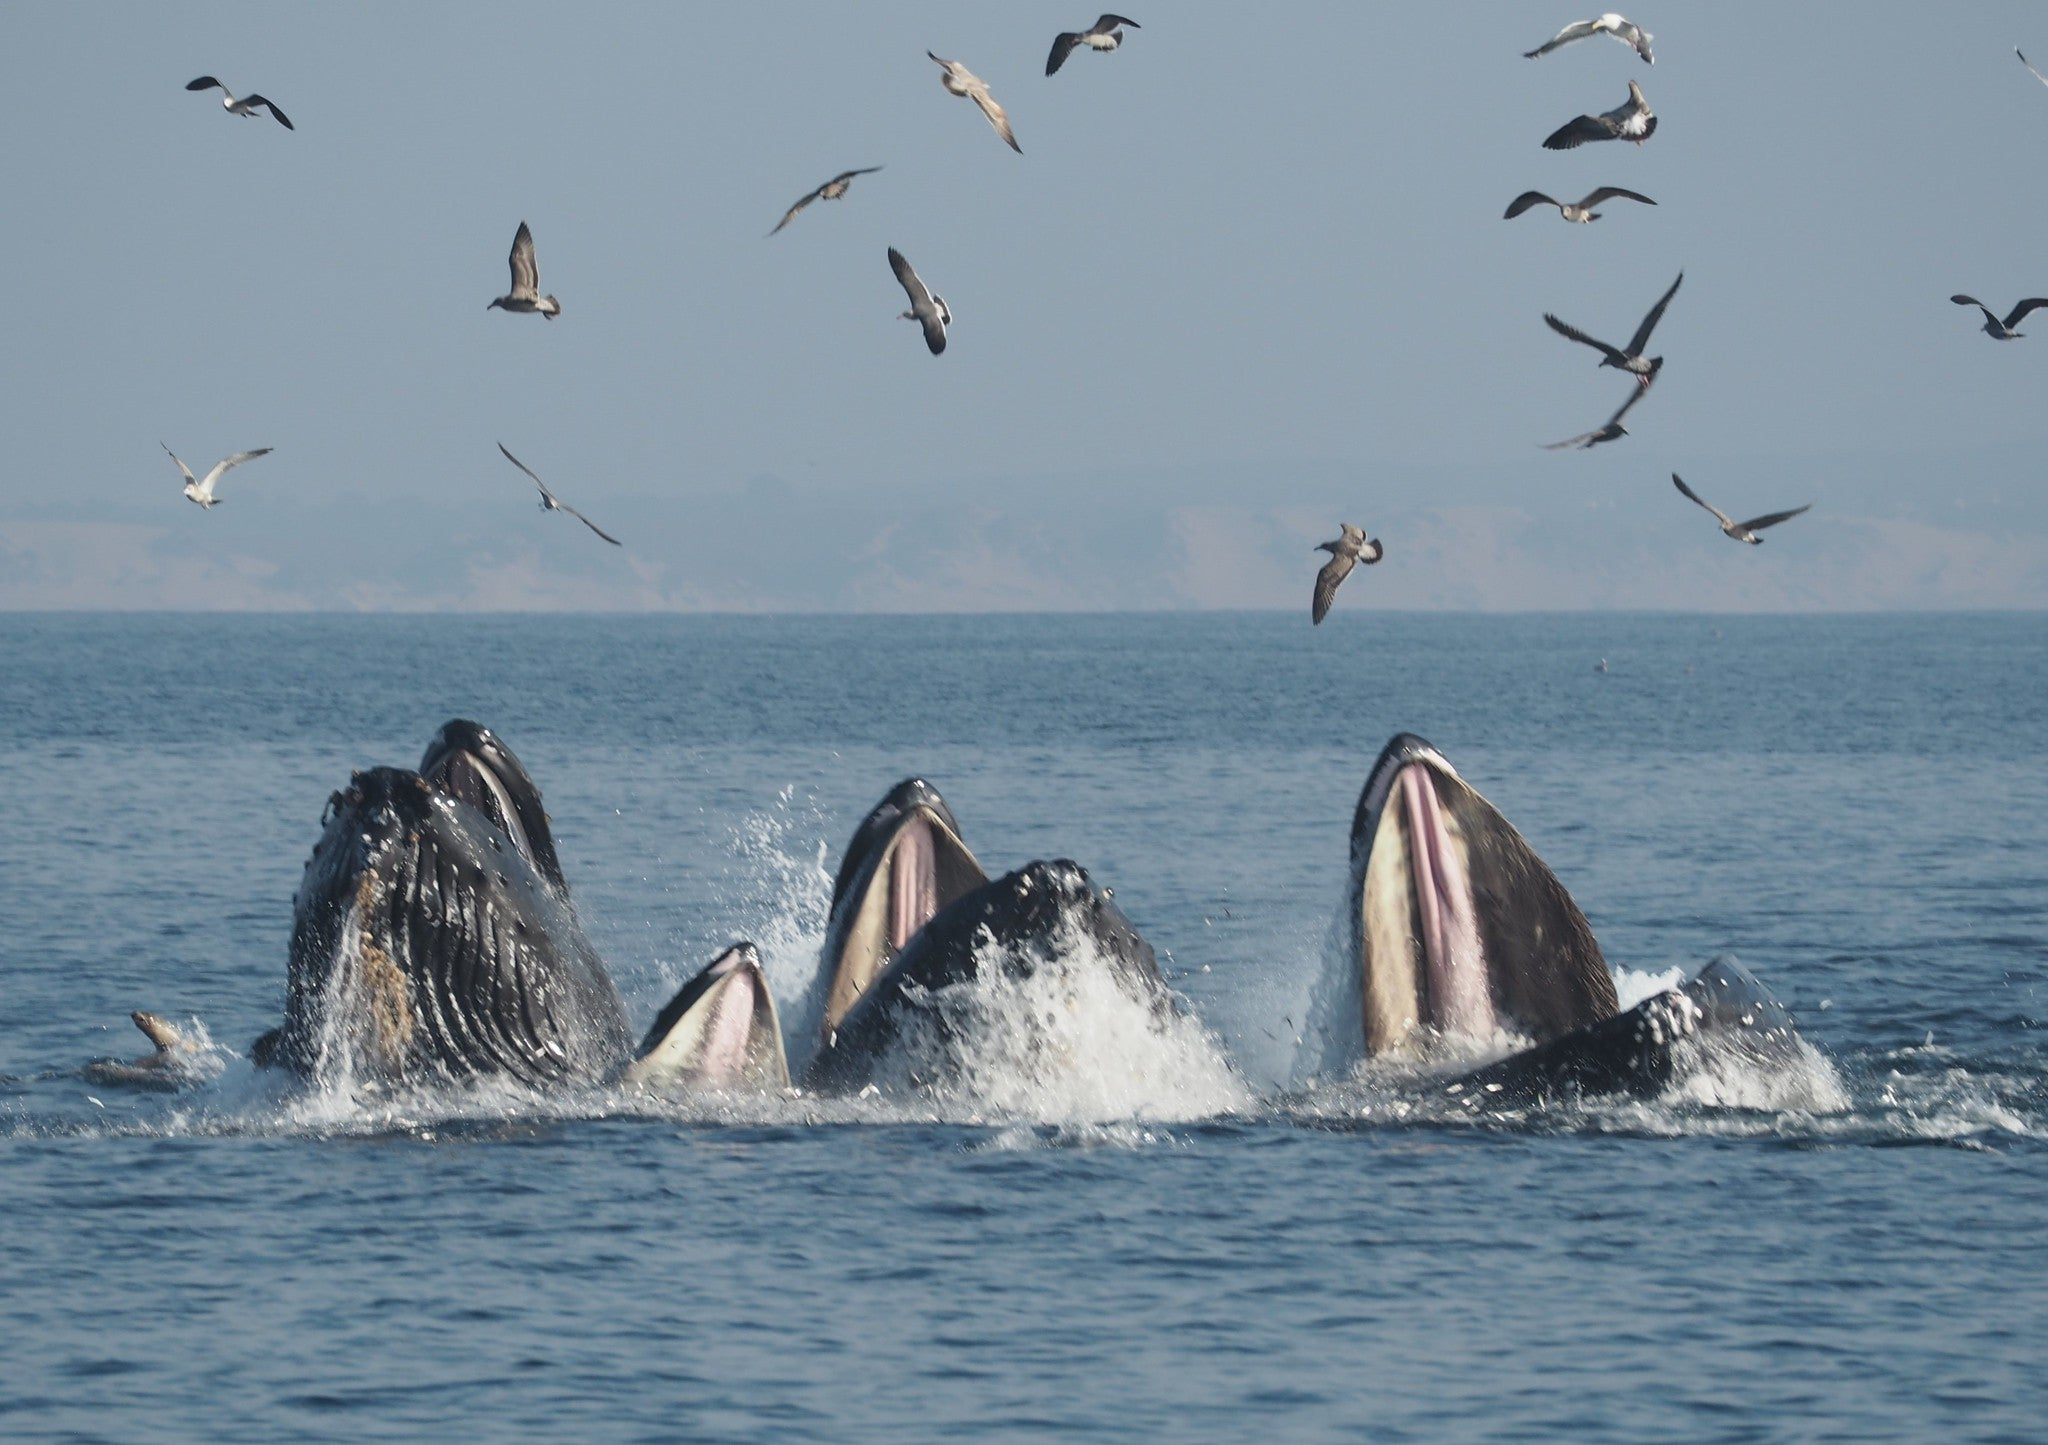 Finally, some good news about humpback whales